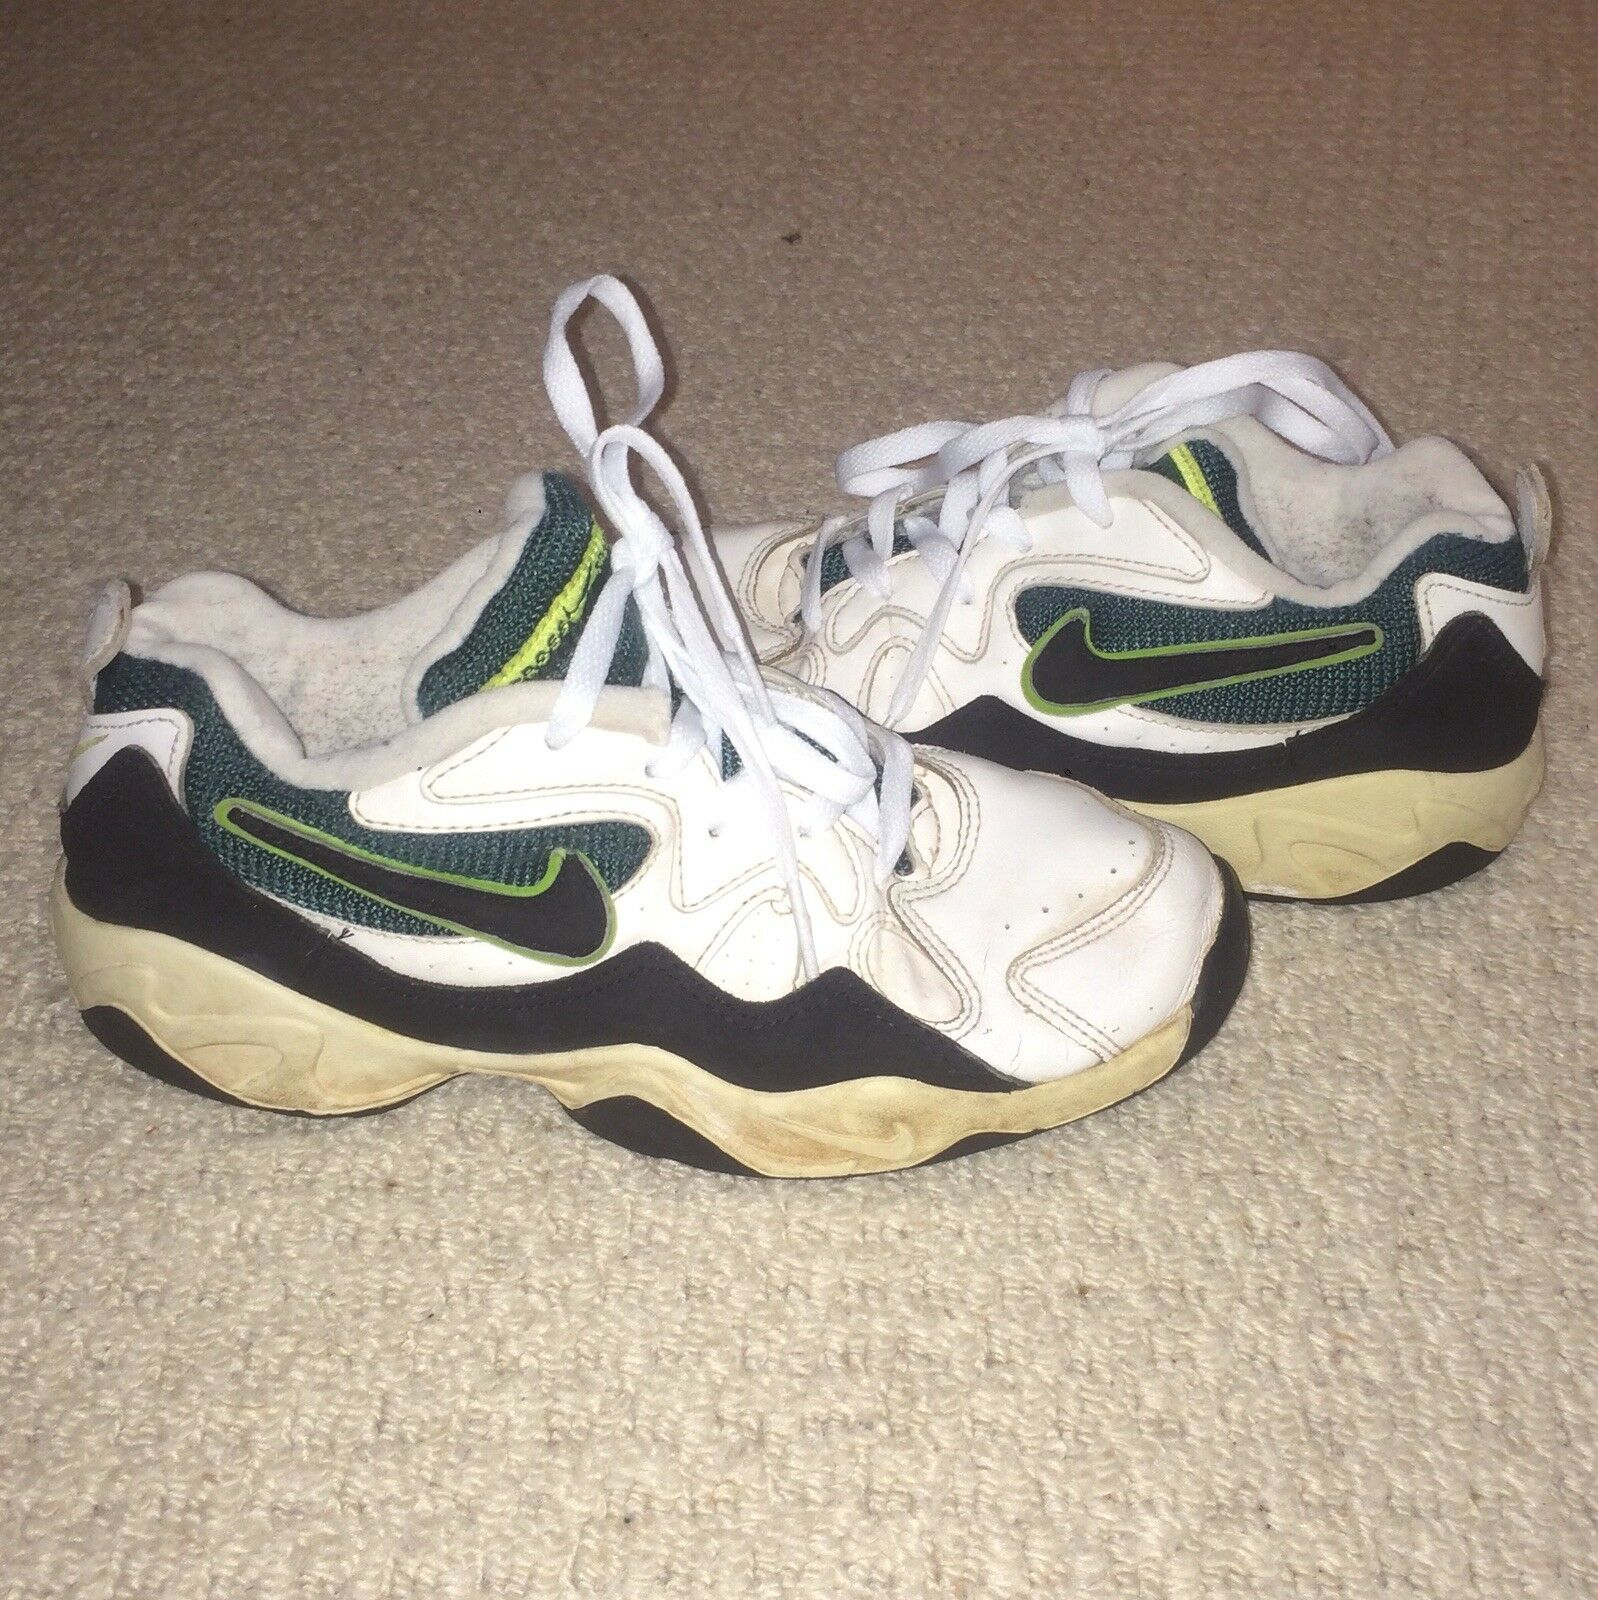 Damens's Vintage Air Max ( UK 5.5 ) Like 90 95 97 98 Tailwind 360 TN Wavey 180